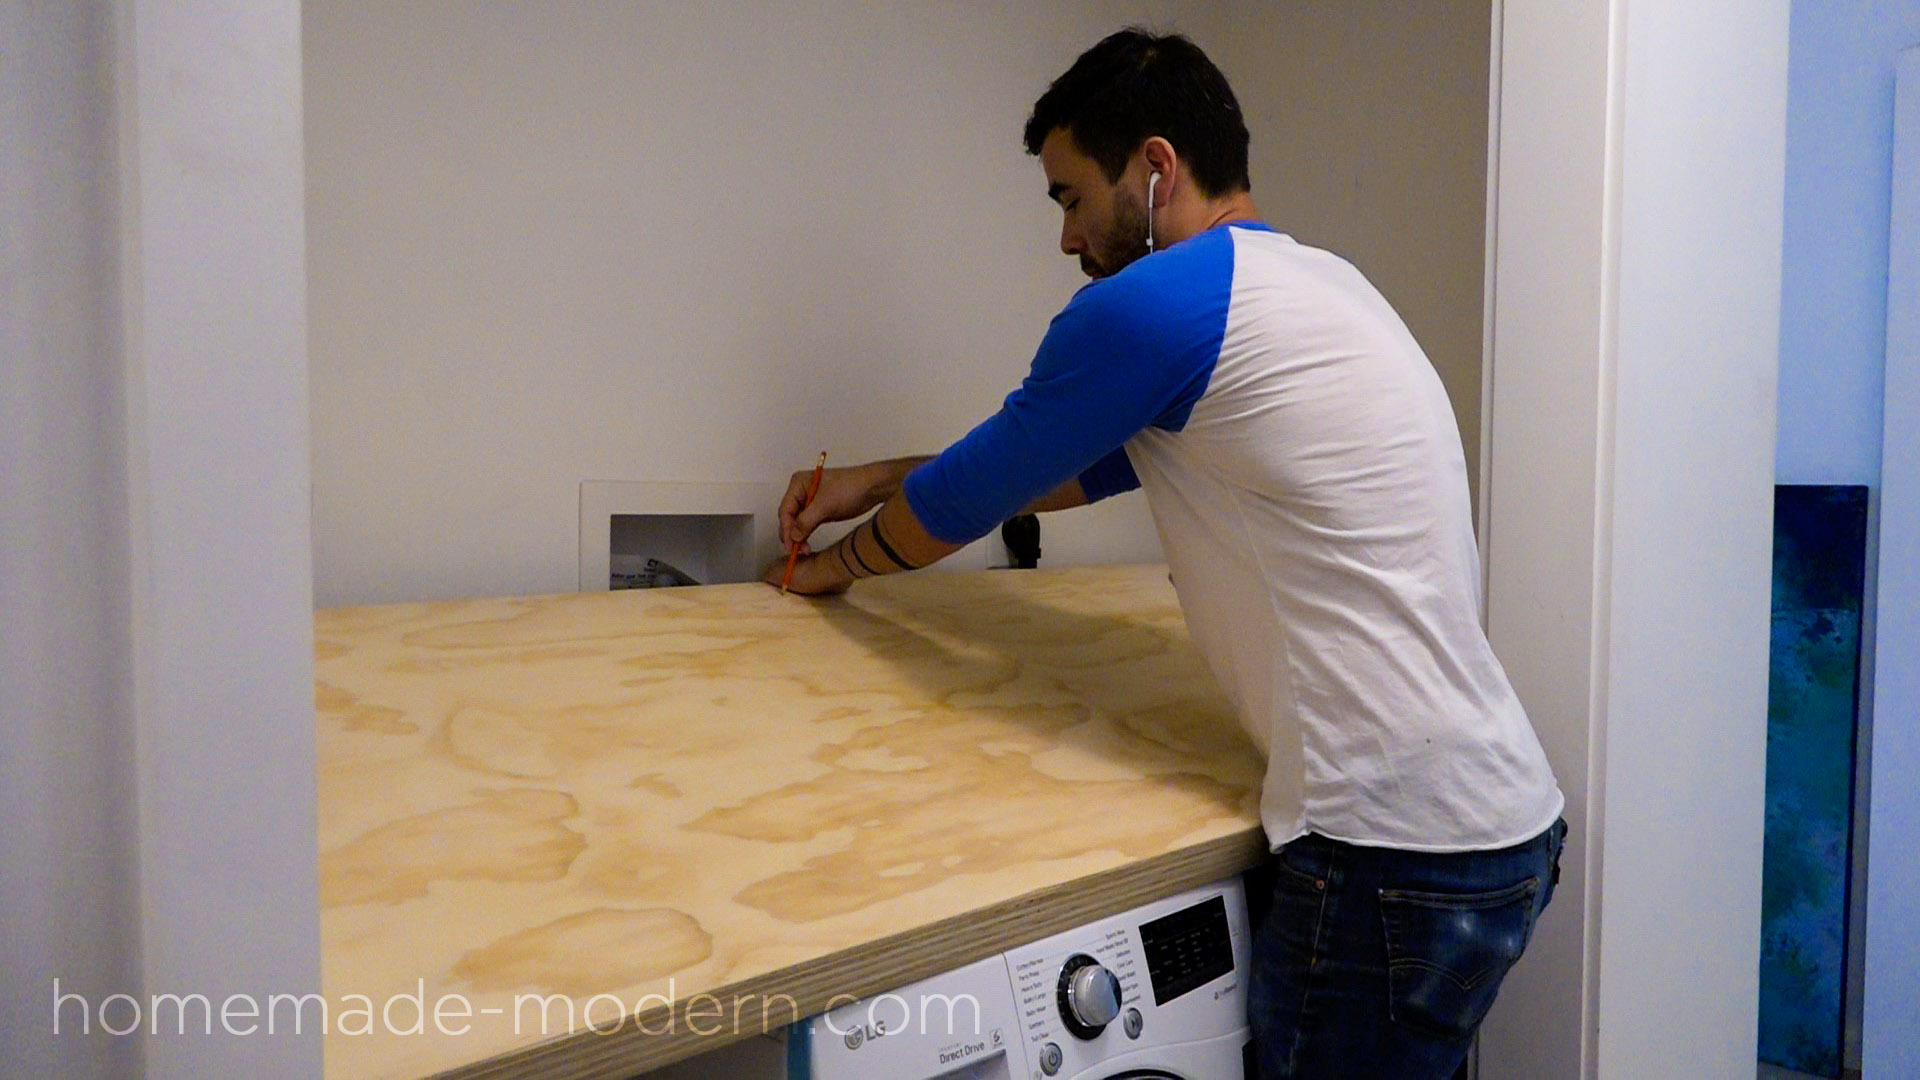 "The shelving for this DIY Laundry Room was made out ¾"" plywood from Home Depot. Everything was designed it so that it only requires a circular saw, a drill and less than $150 worth of materials. Full instructions can be found at HomeMade-modern.com"